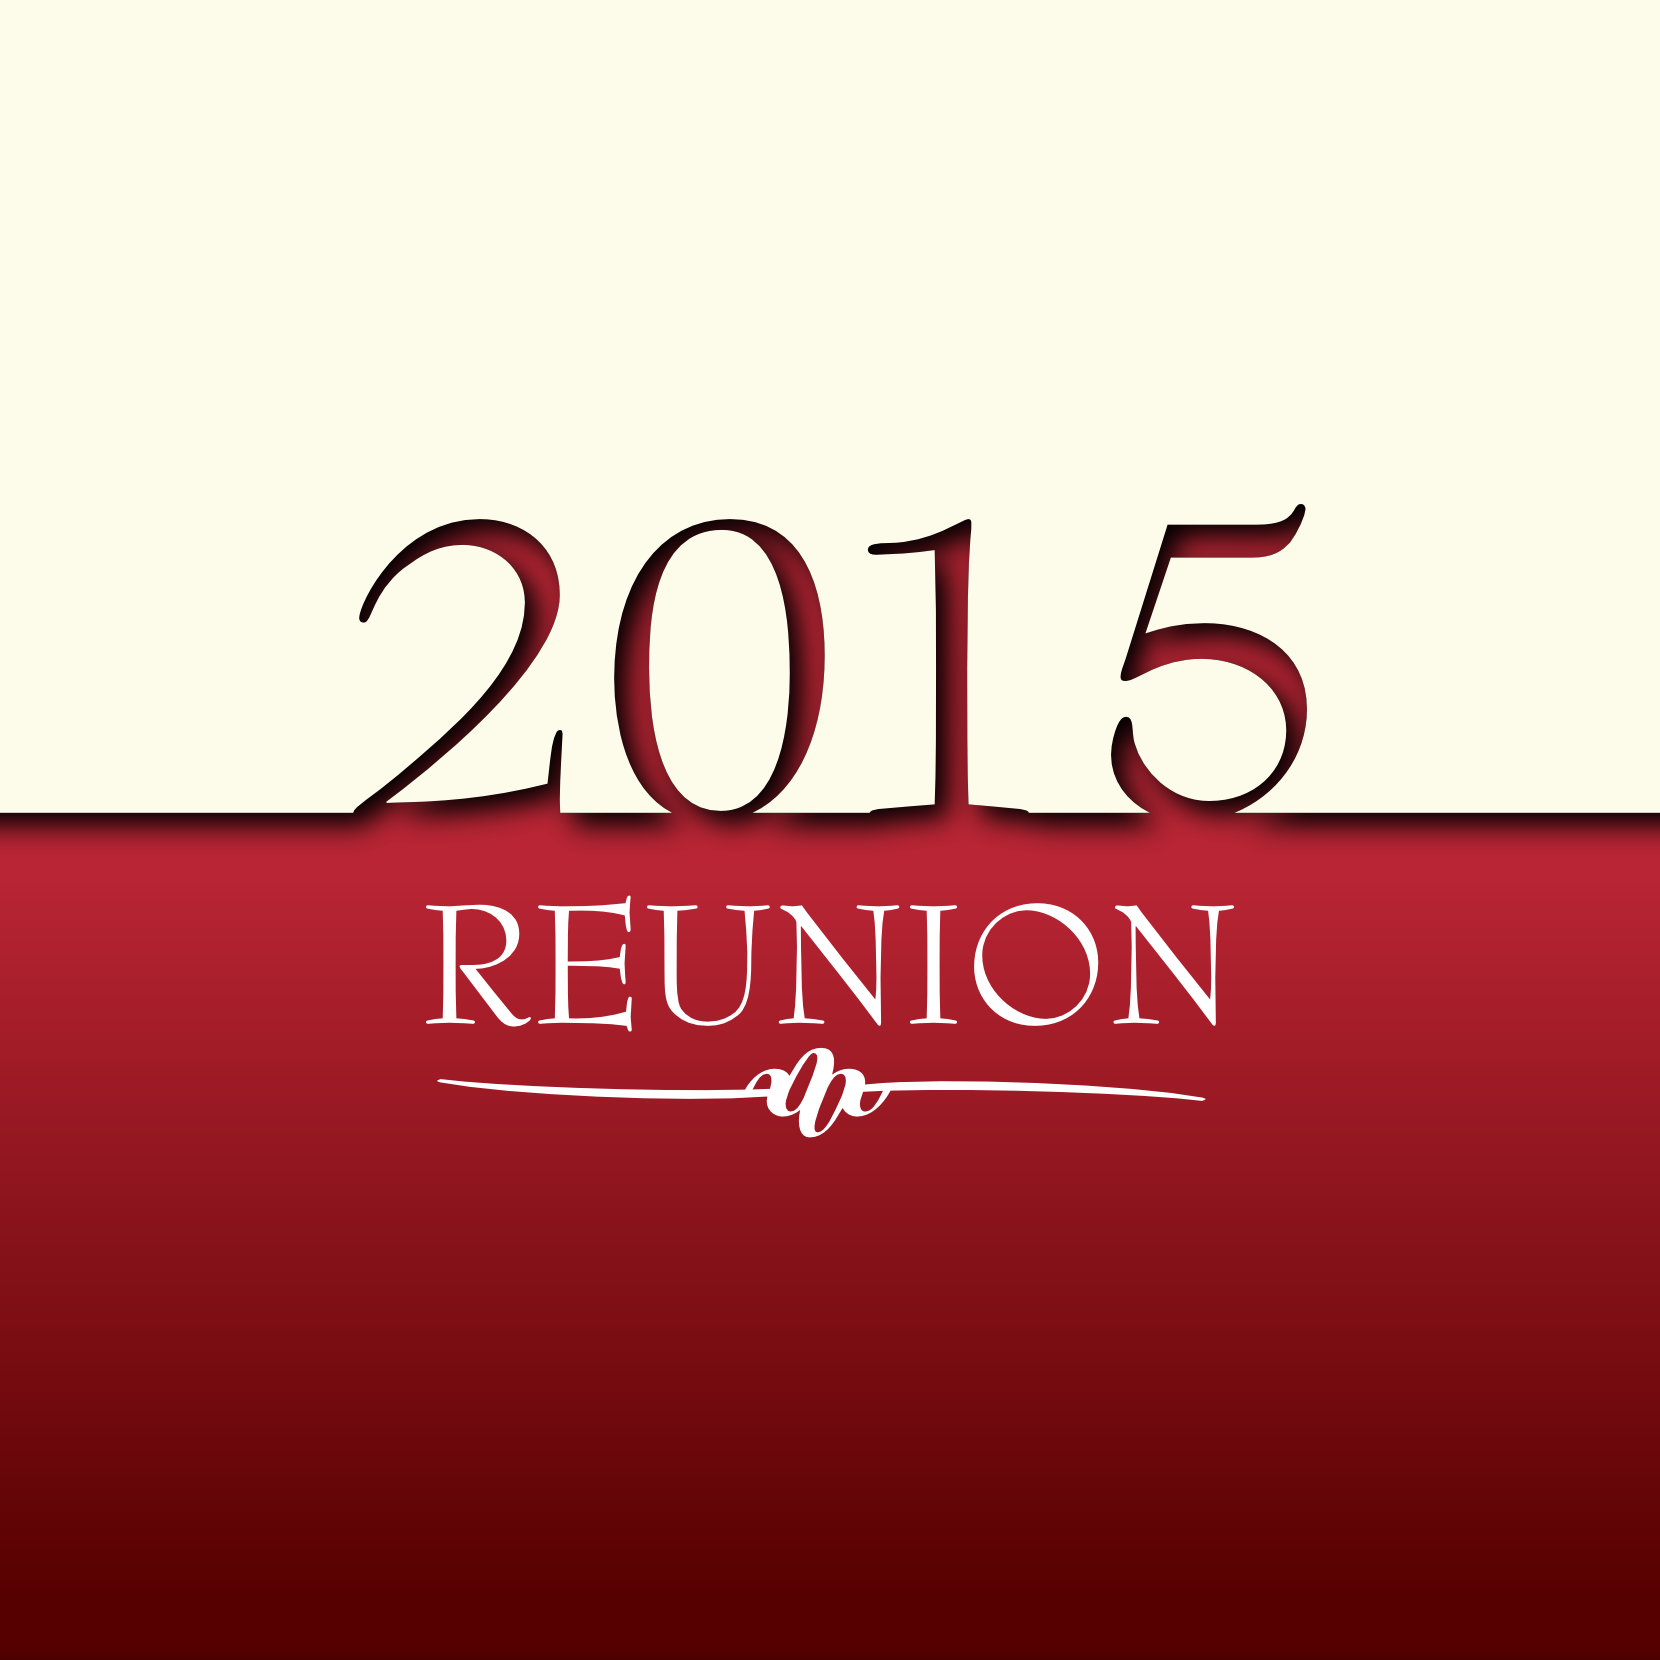 2015 Reunion Set for July 25